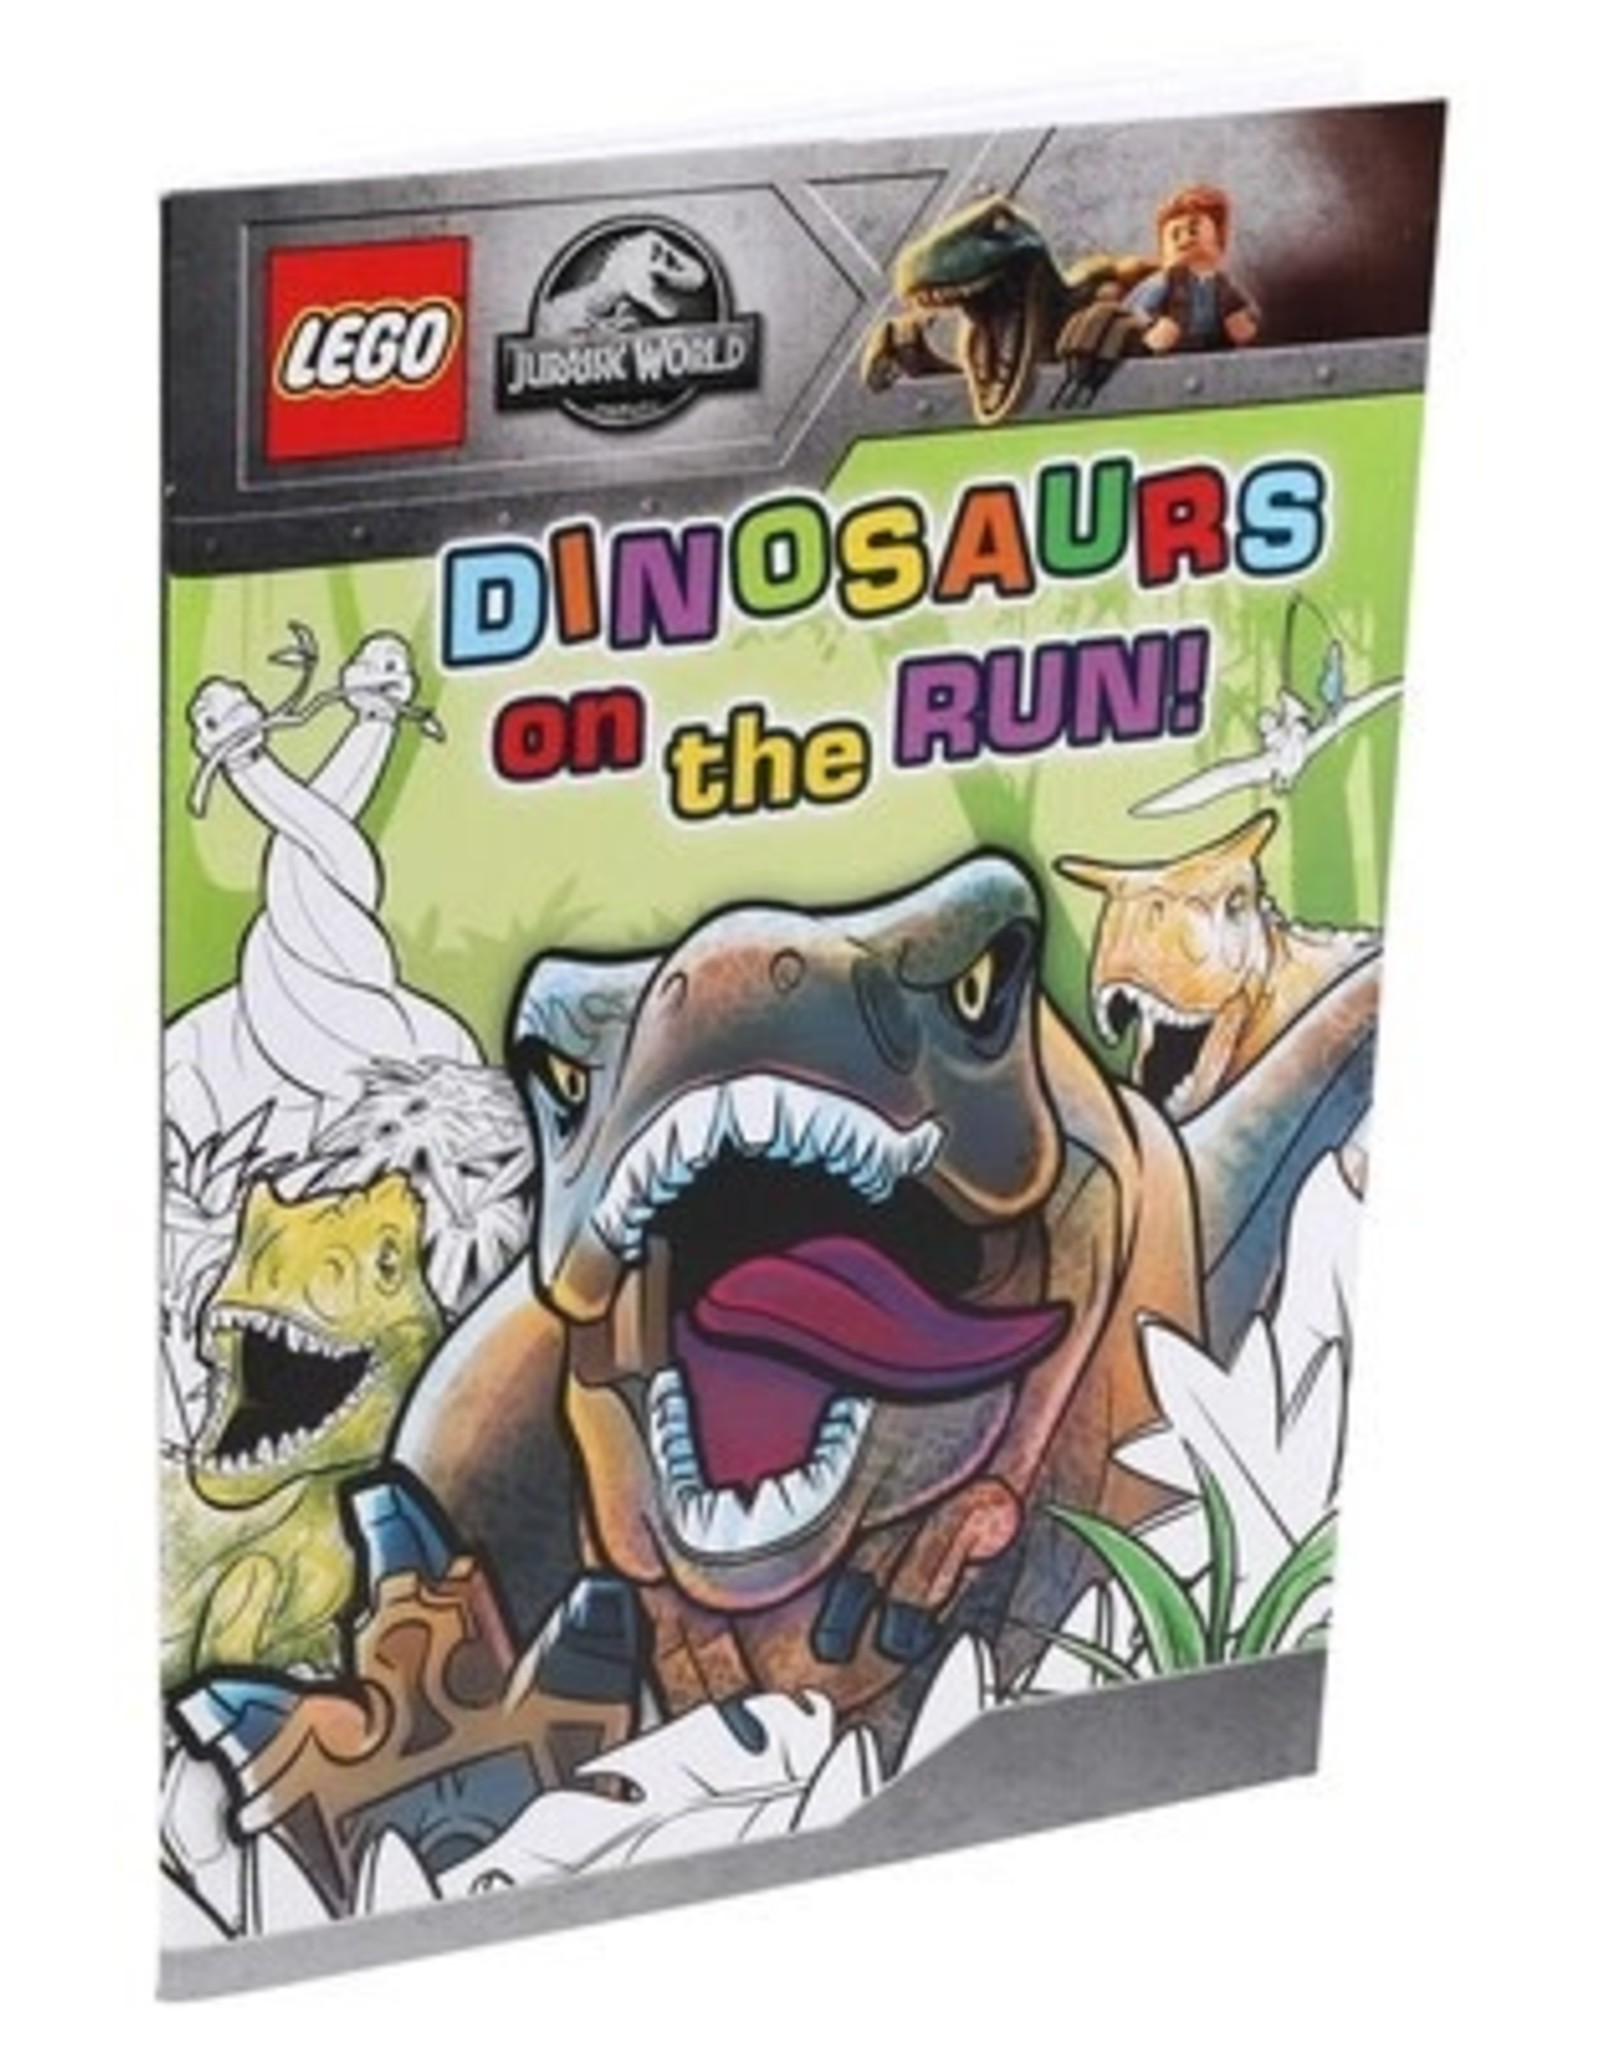 LEGO Dinosaurs on the Run!